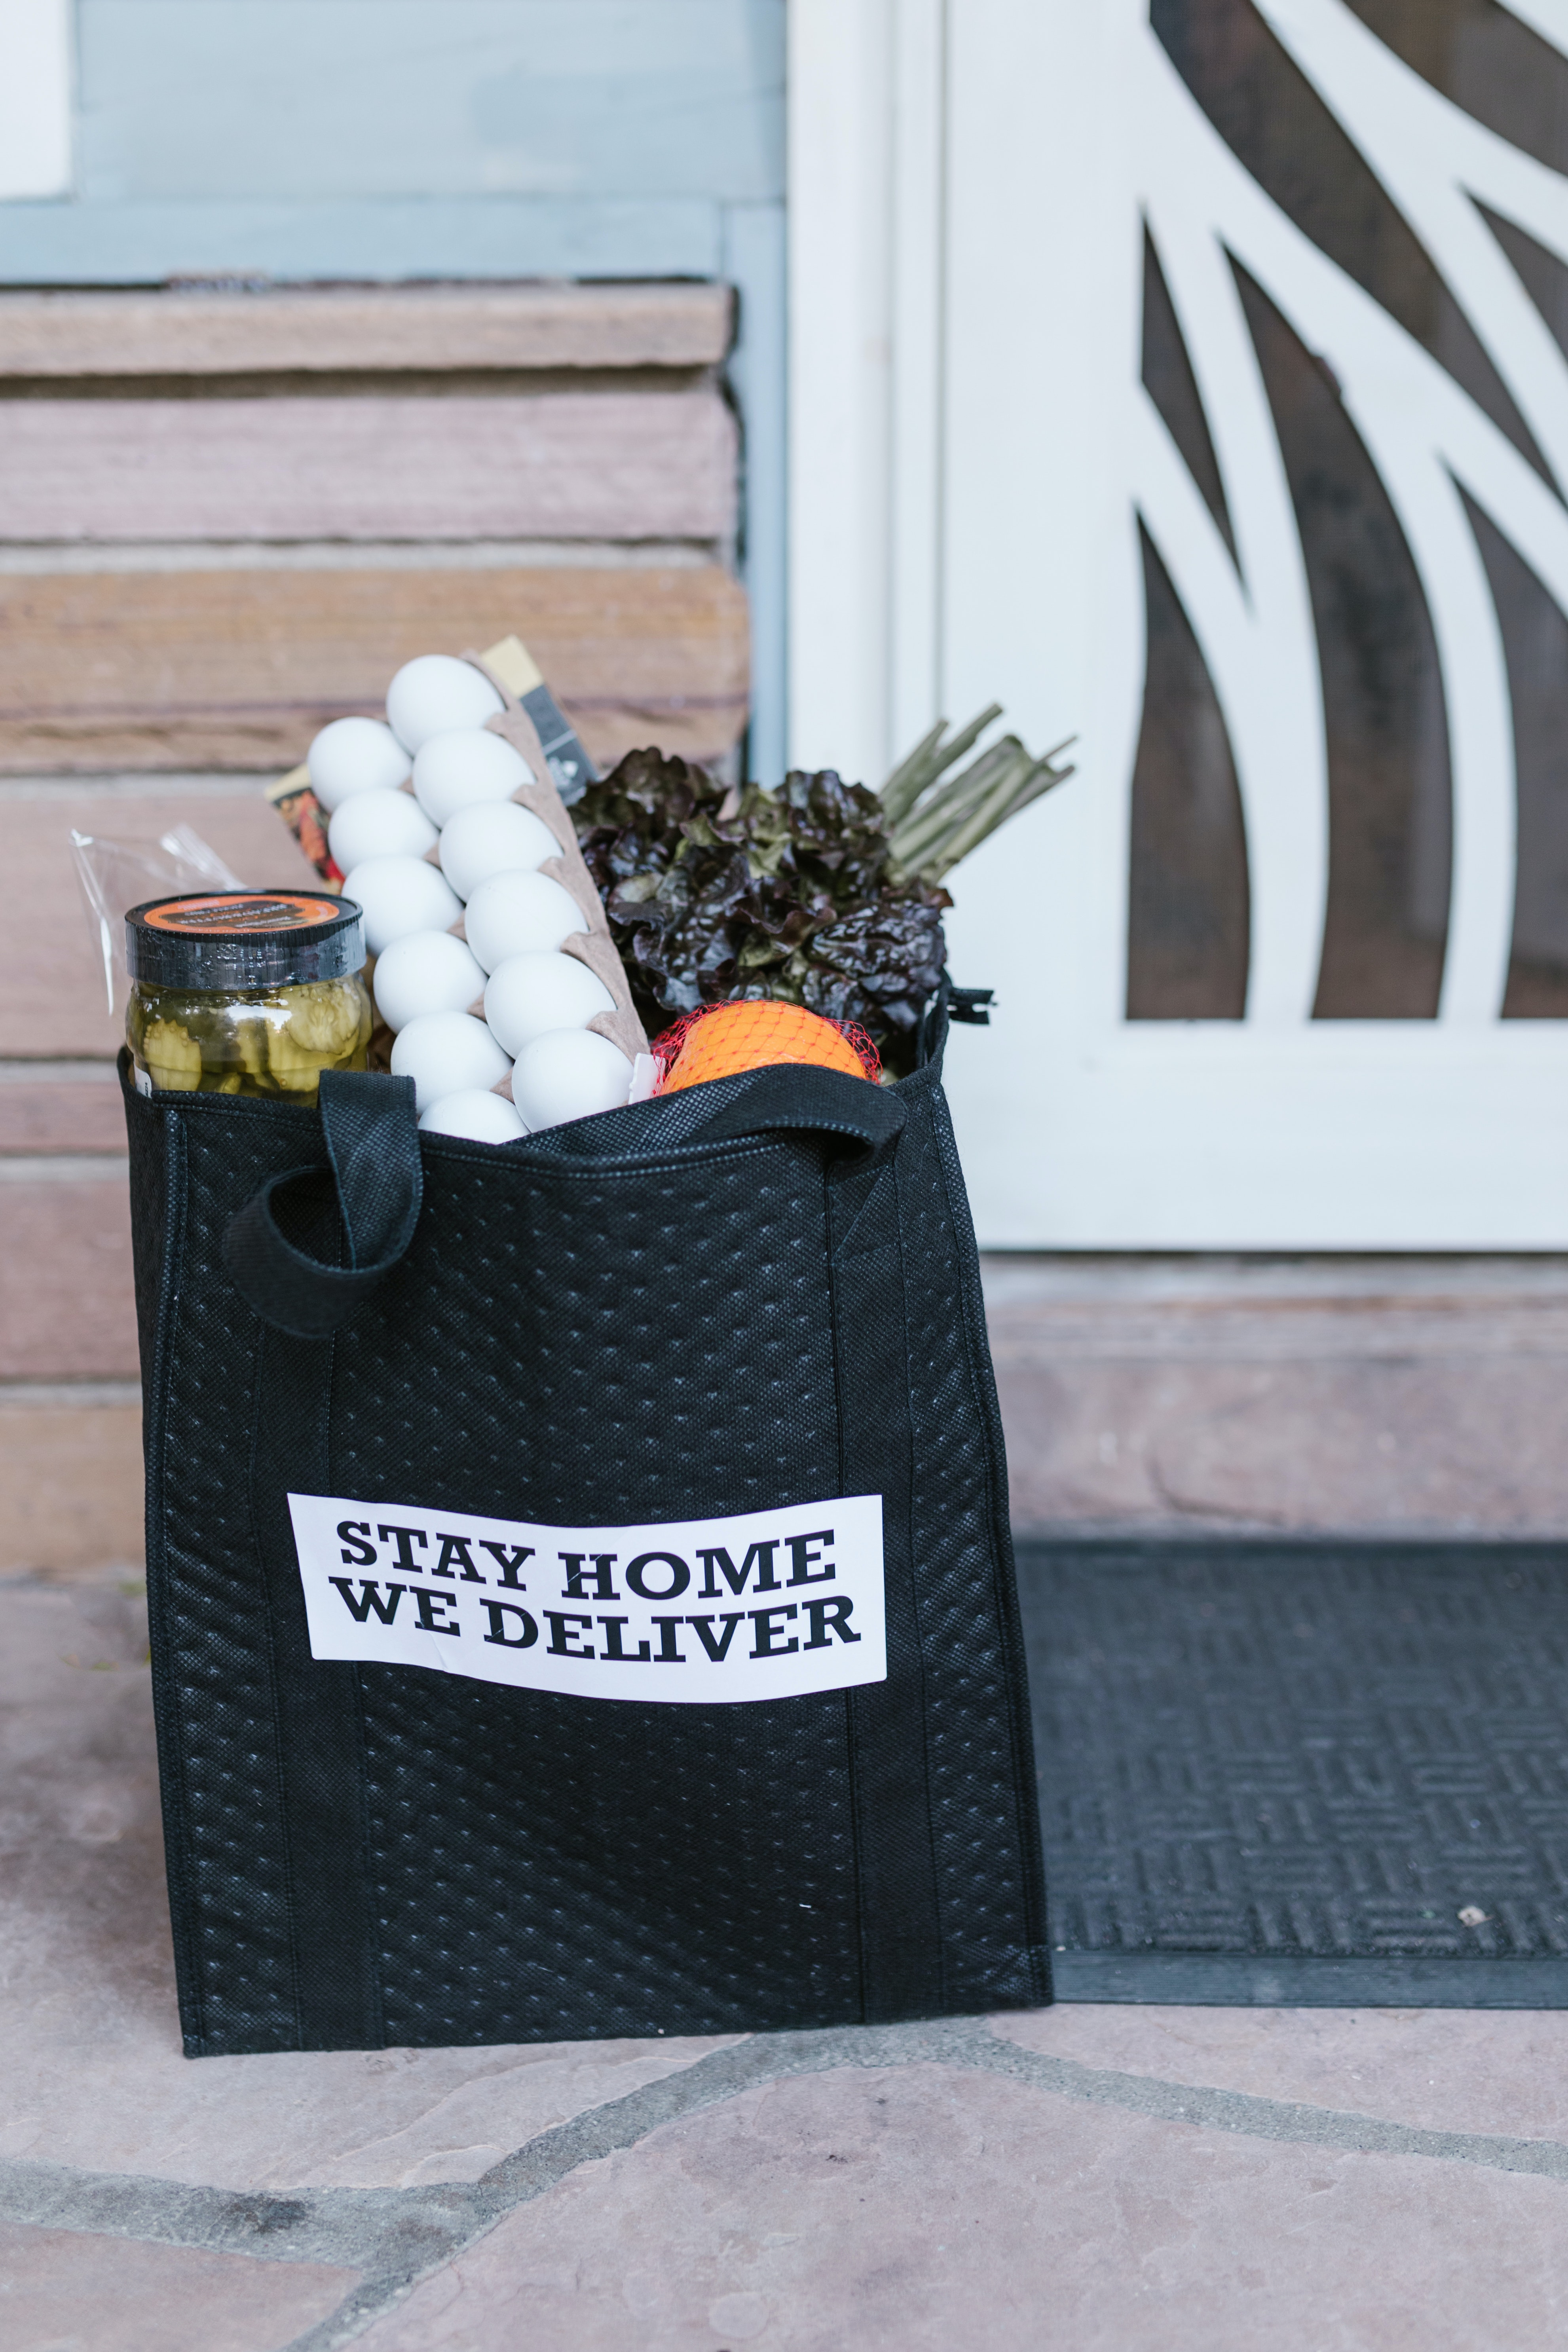 bagged grocery delivery service